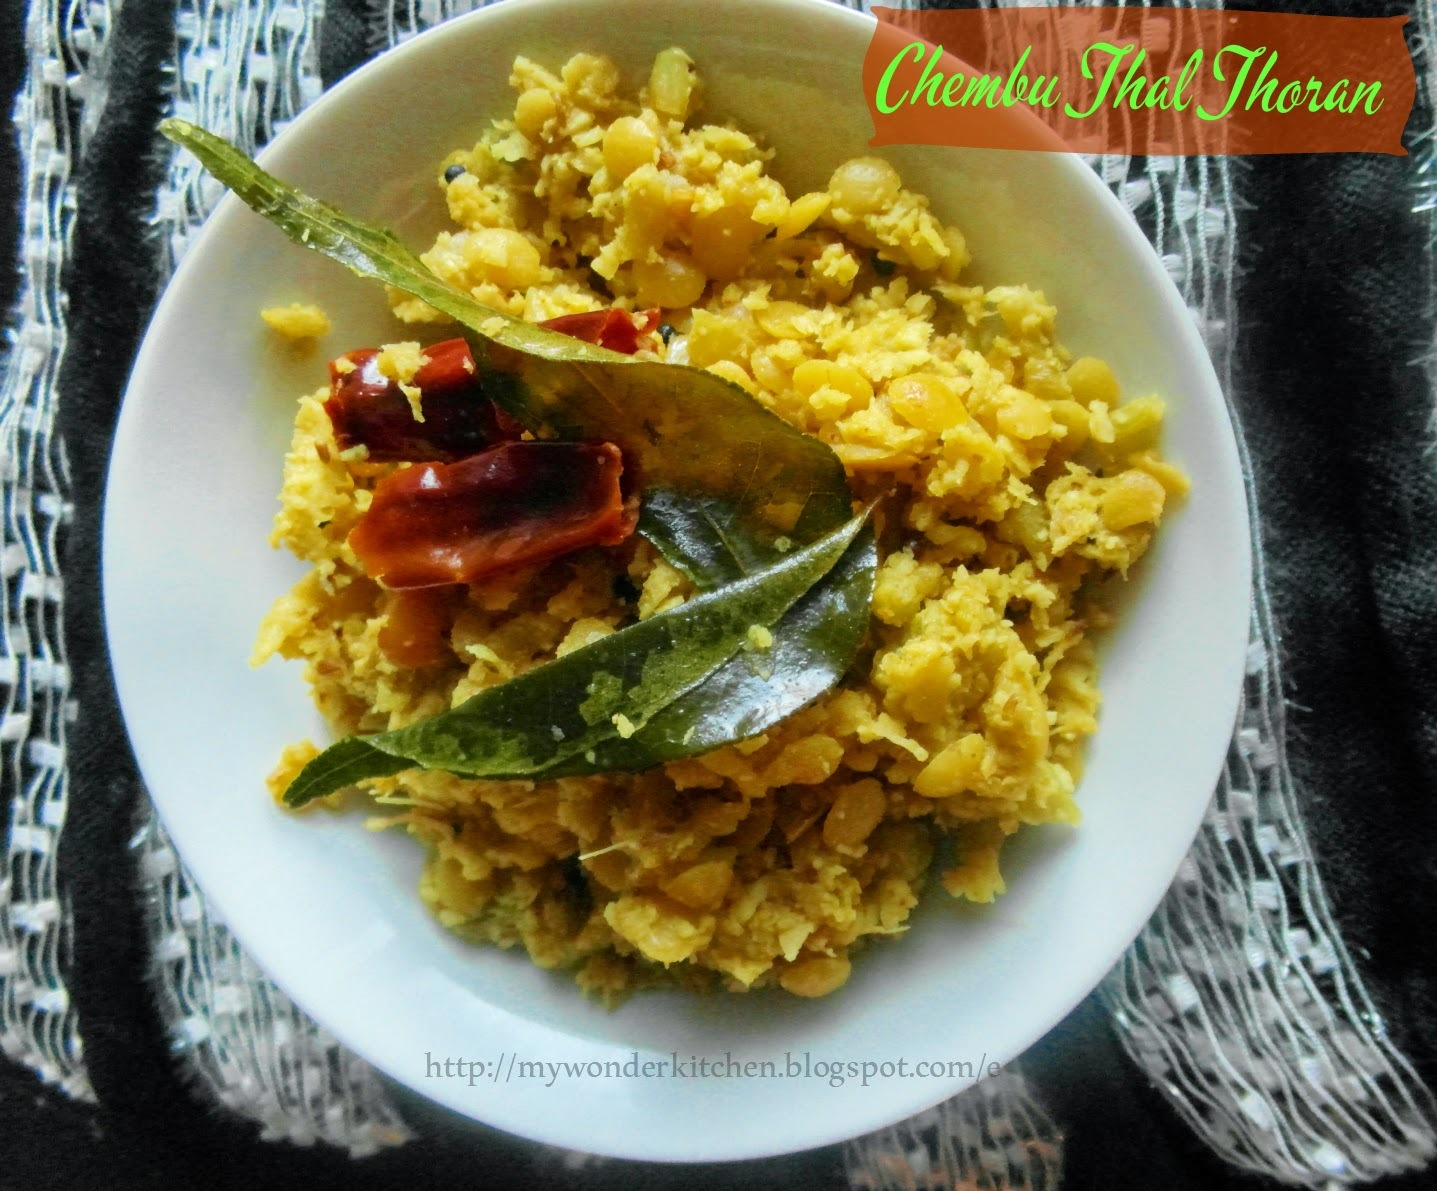 Chembu Thal thoran|Taro stem dish made with coconut paste and lentil,a Kerala speciality